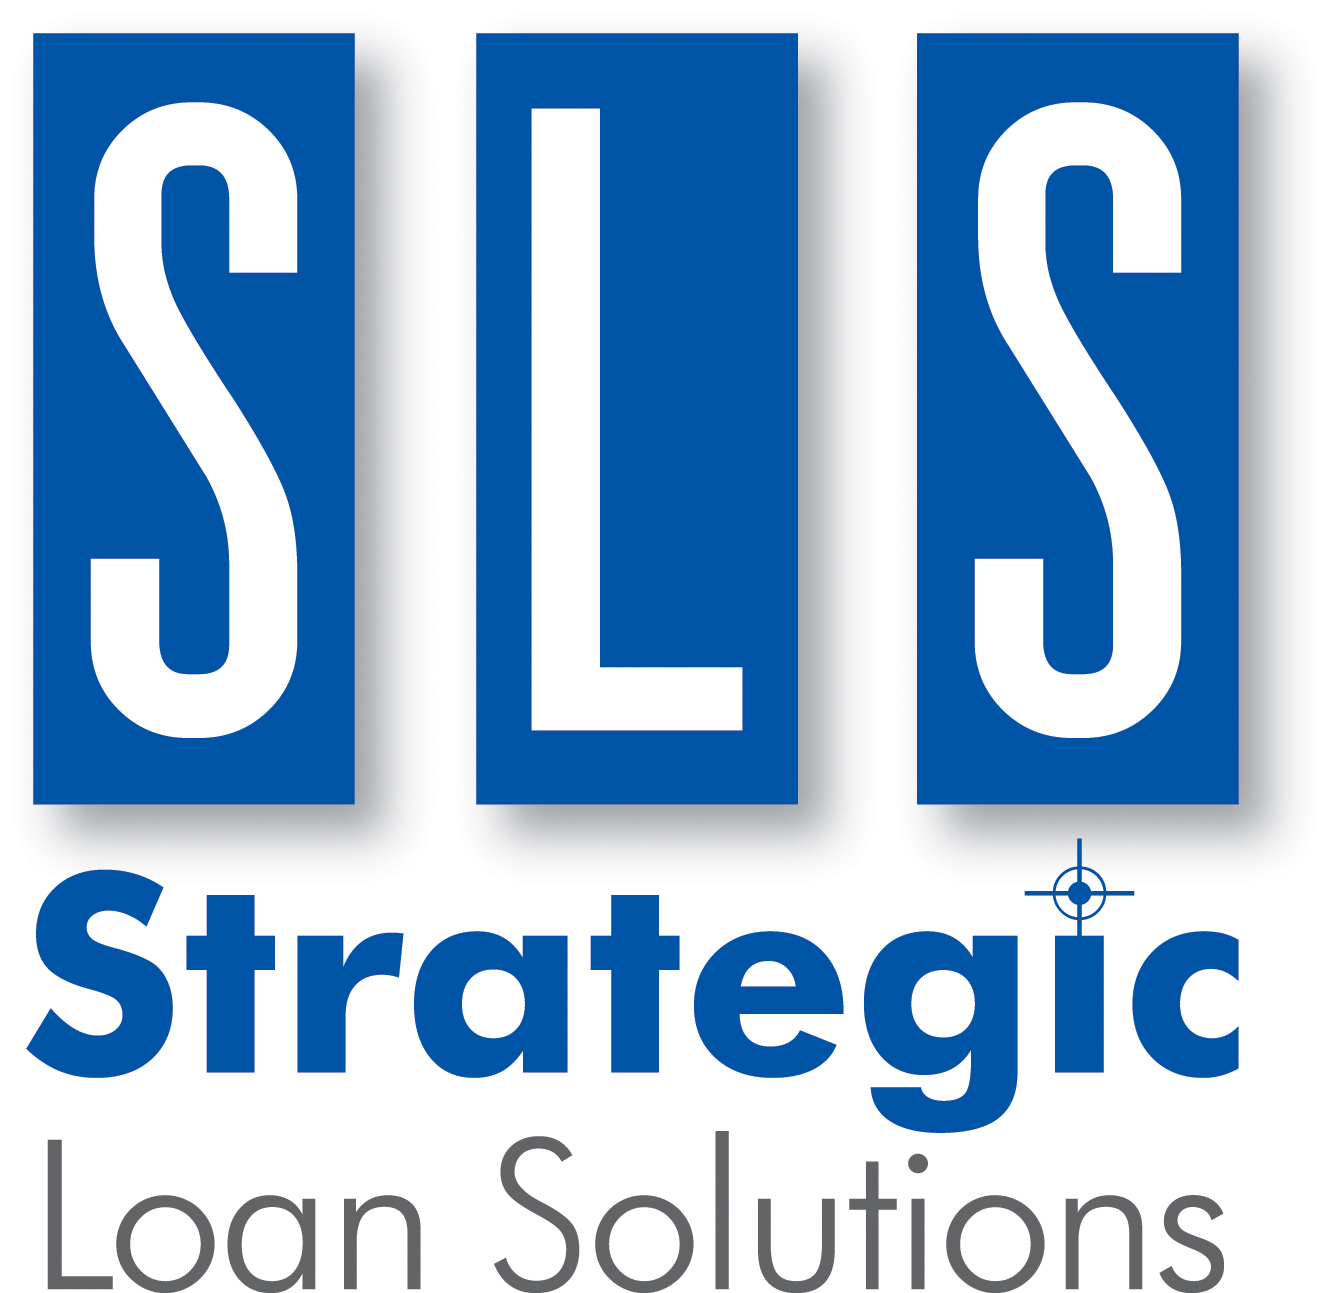 Strategic Loan Solutions